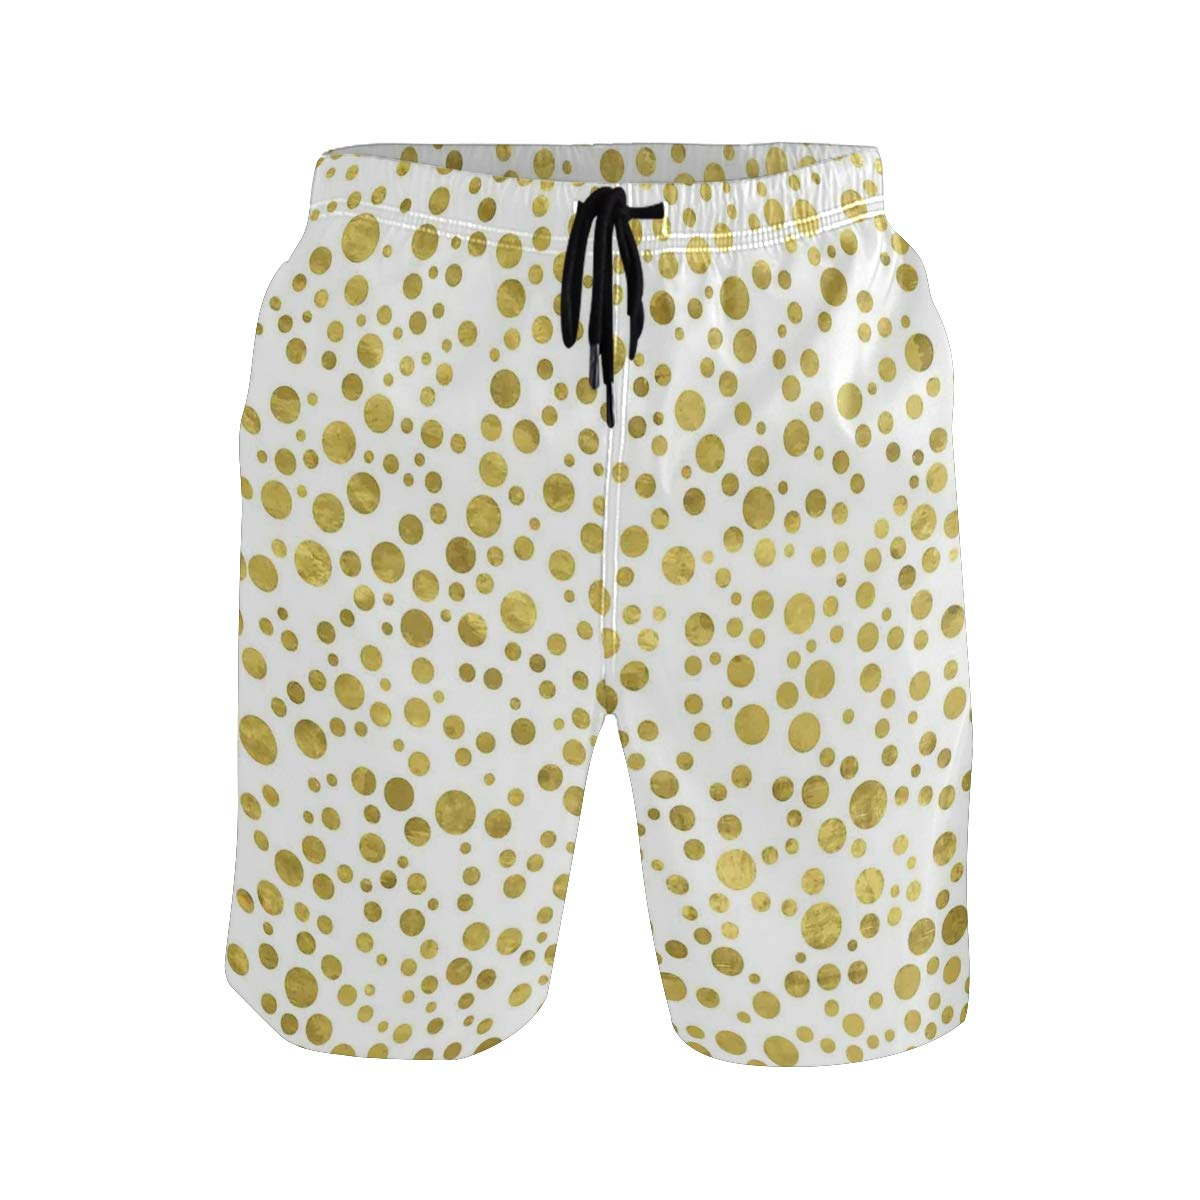 COVASA Mens Summer ShortsIllustration of Golden Polka Dots Vintage Style Art D